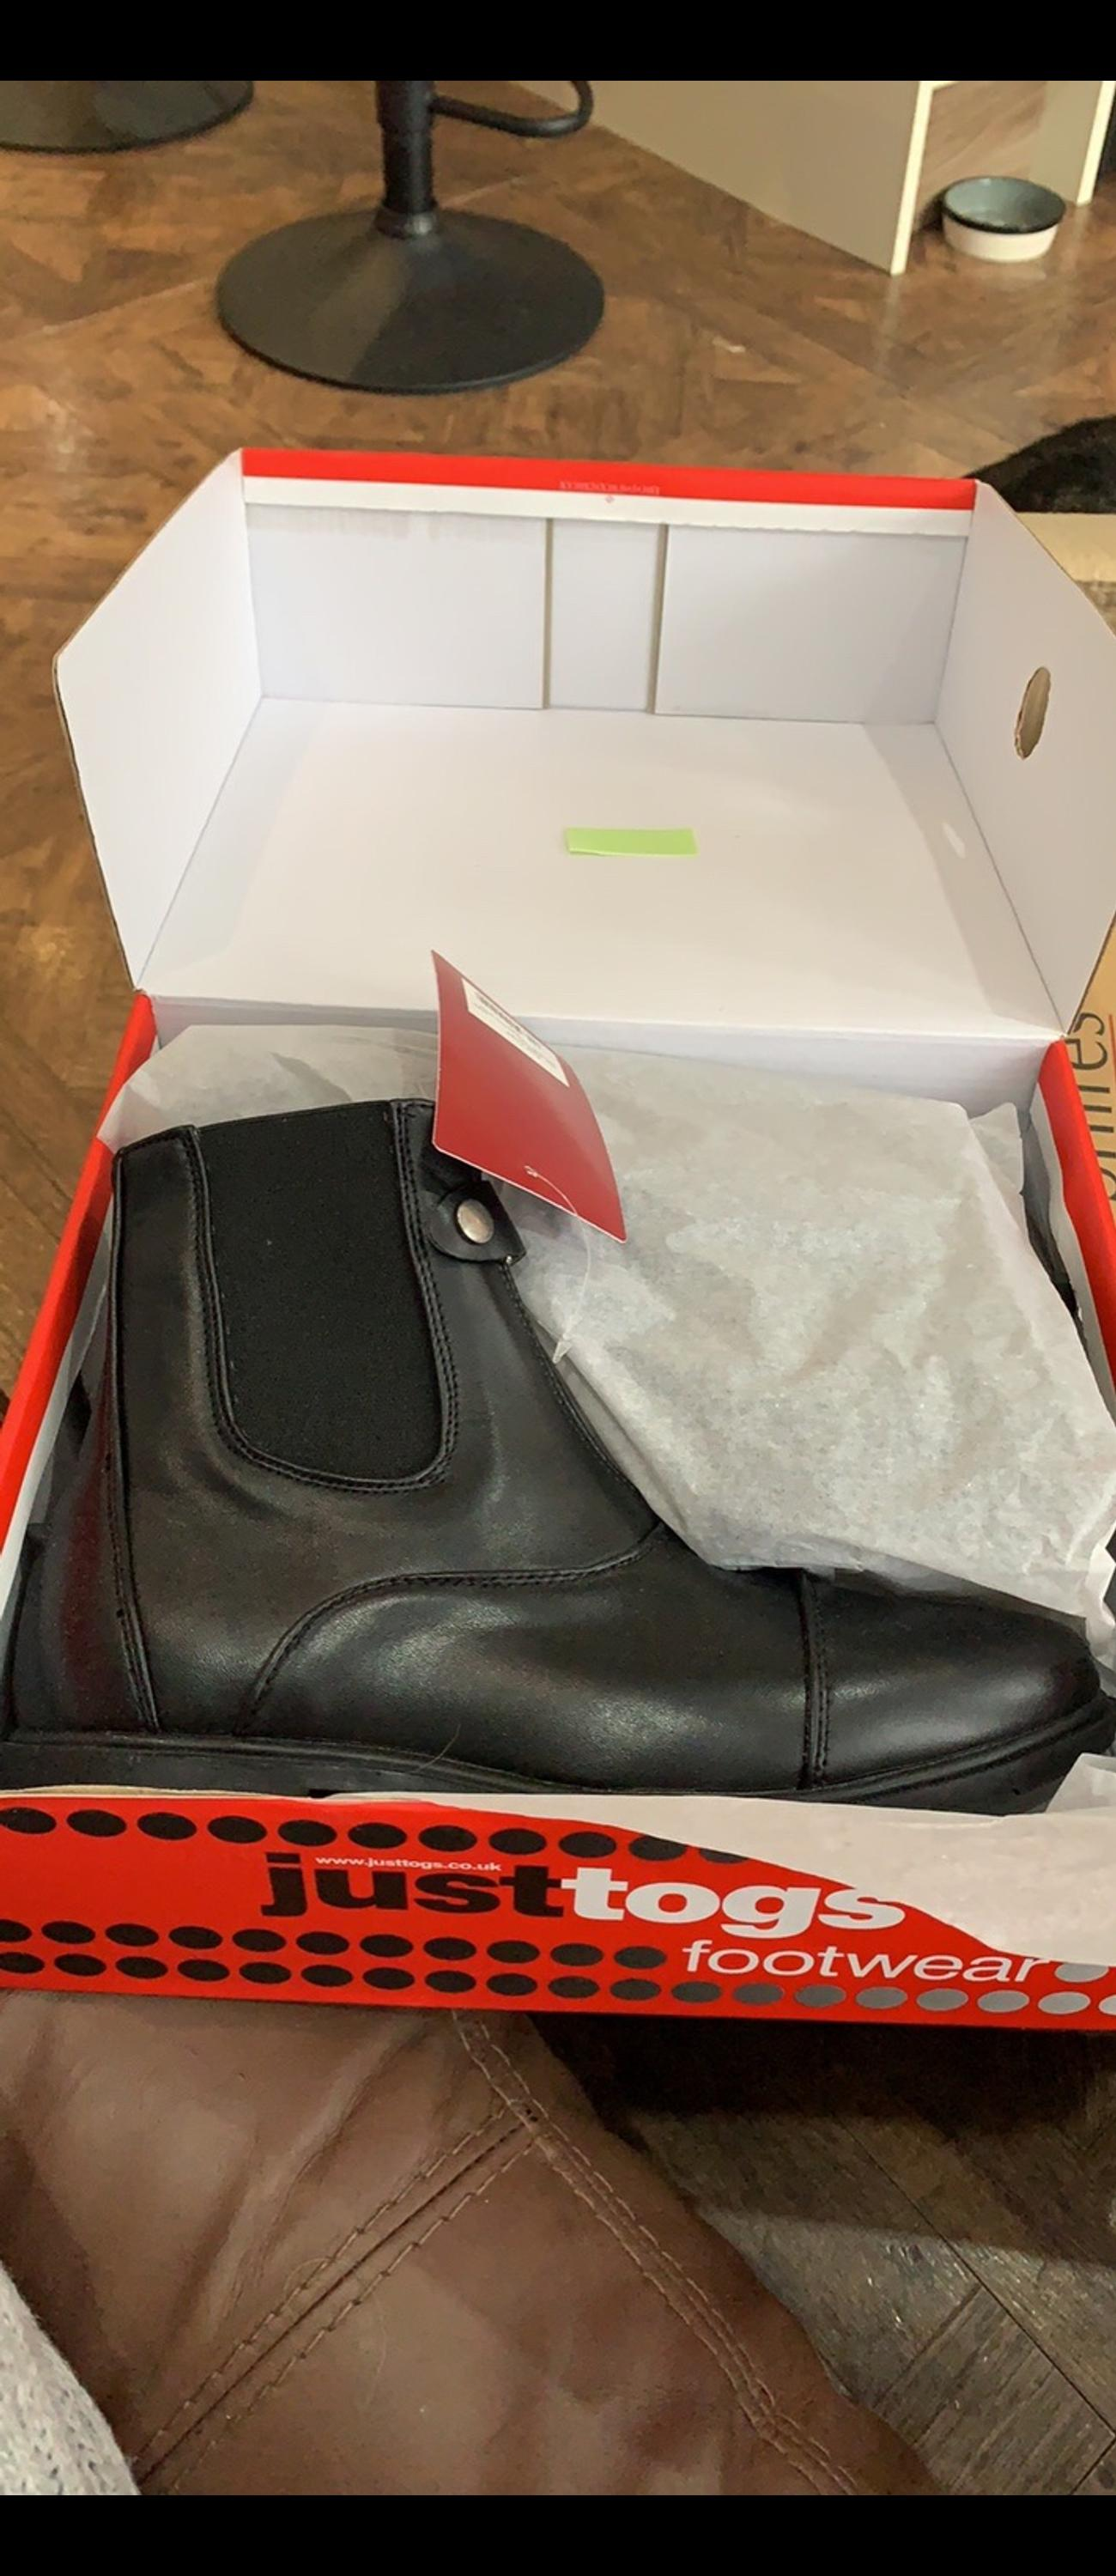 Just tog black jod boots. Size 7. Brand new in the box. RRP £29.99 Also have these in a size 4.